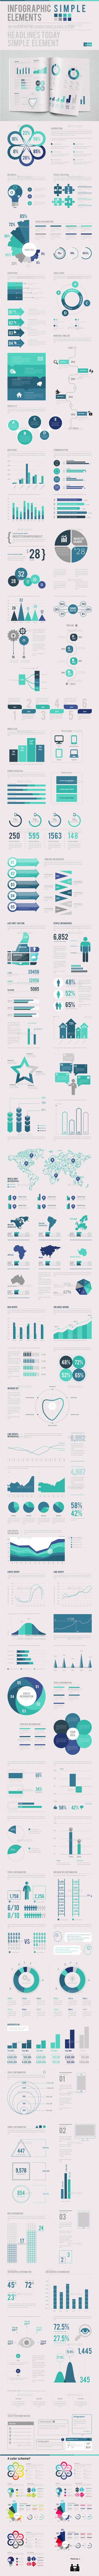 GraphicRiver Infographic Simple 9869994